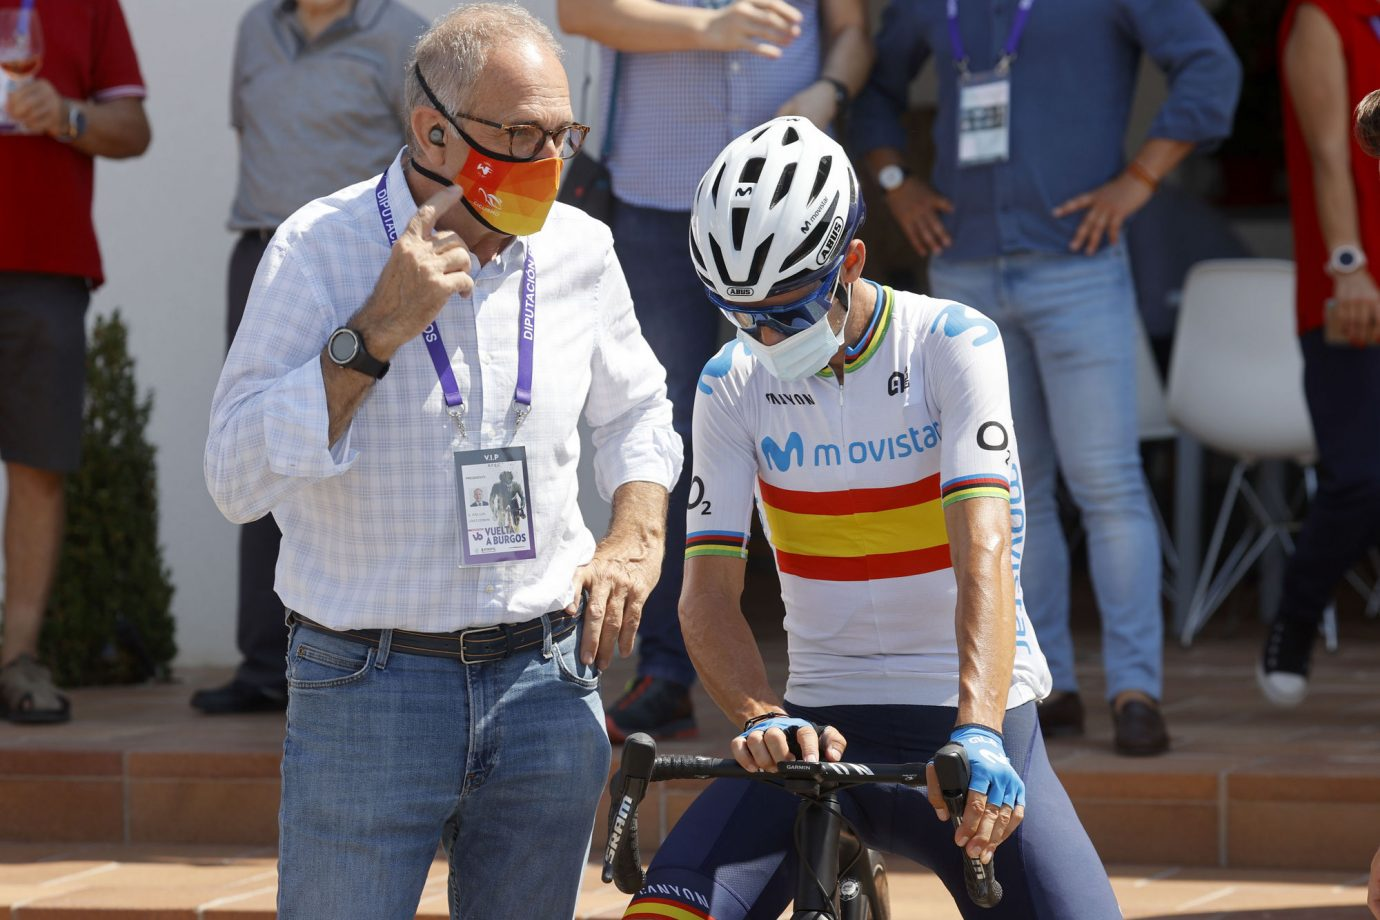 Imagen de la noticia 'Valverde remains 11th overall before Neila'